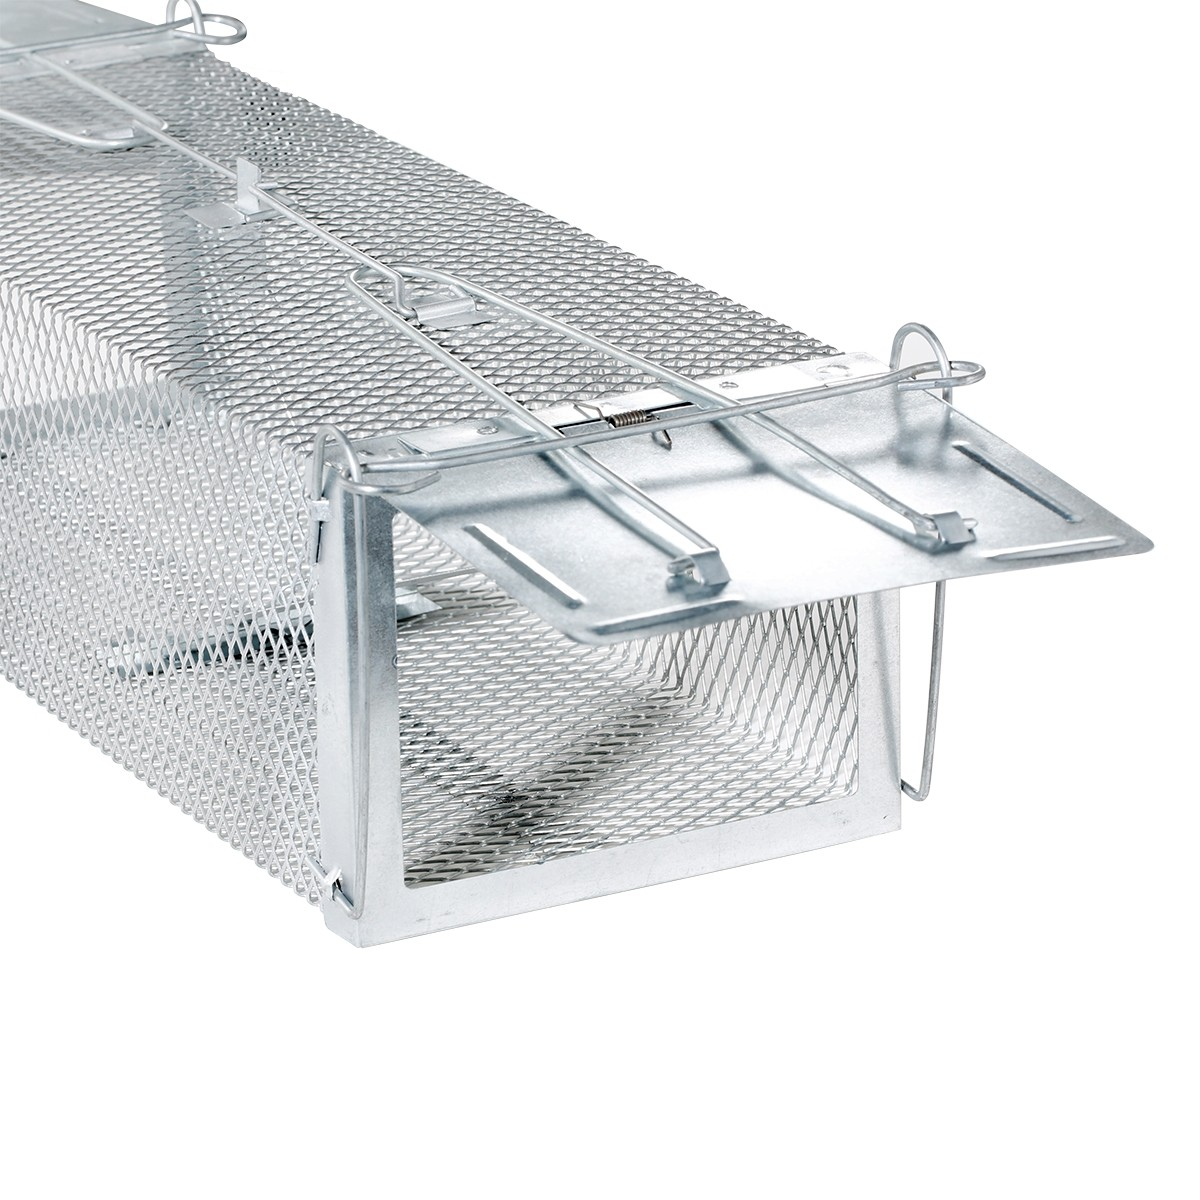 Rat Trap Two Doors 2 Triggers Humane Animal Trap Cage